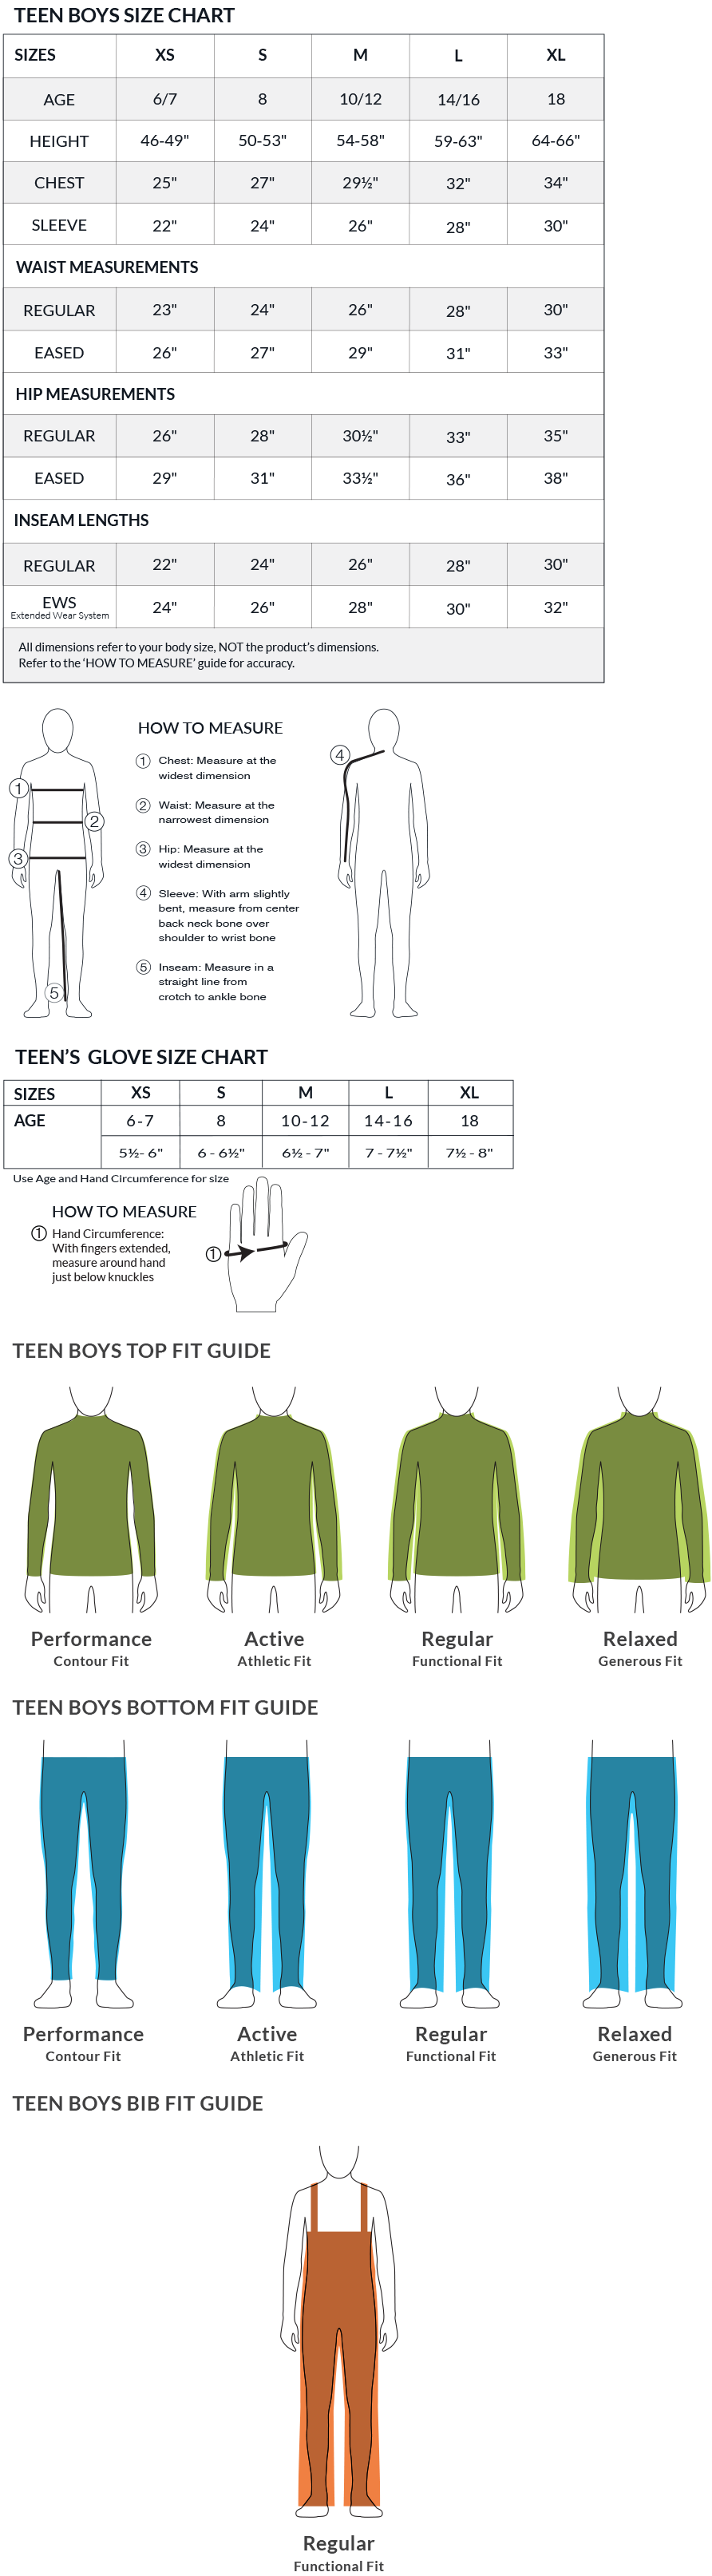 Teen Boy's Sizing Chart and Fit Guide